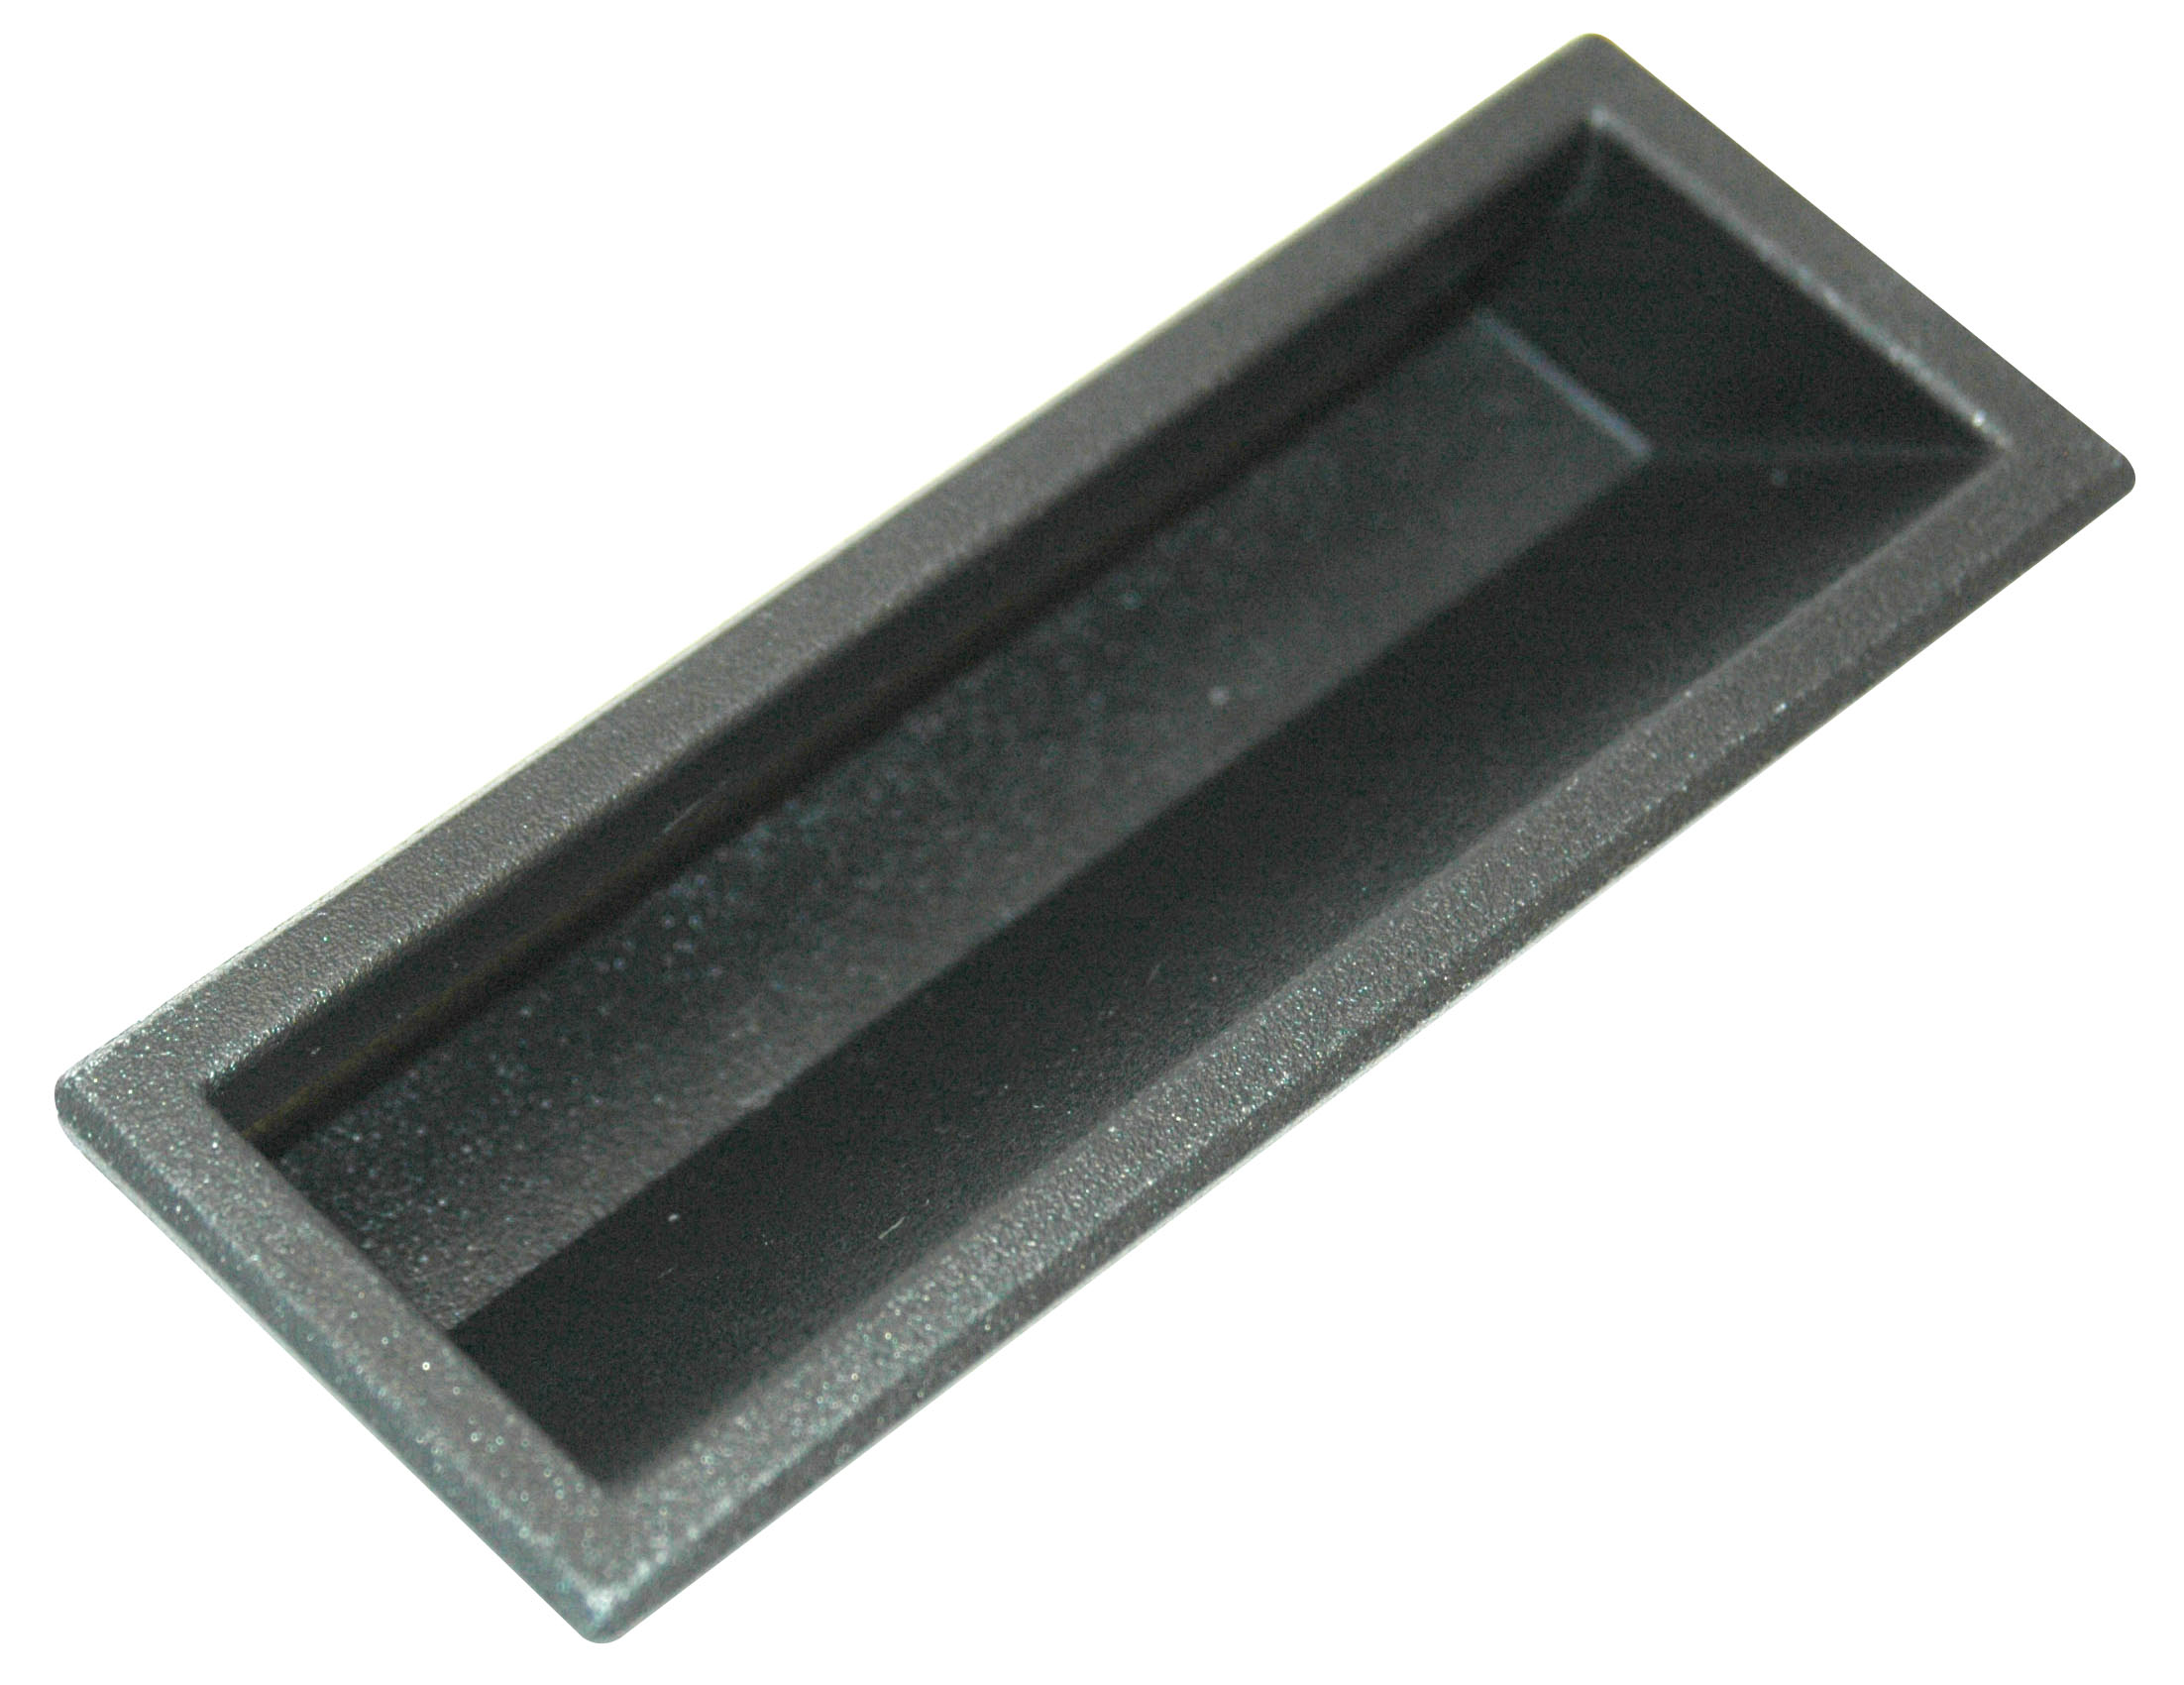 Handle, Small Flush Pull, 1.4mm to 1.8mm Black ABS Plastic